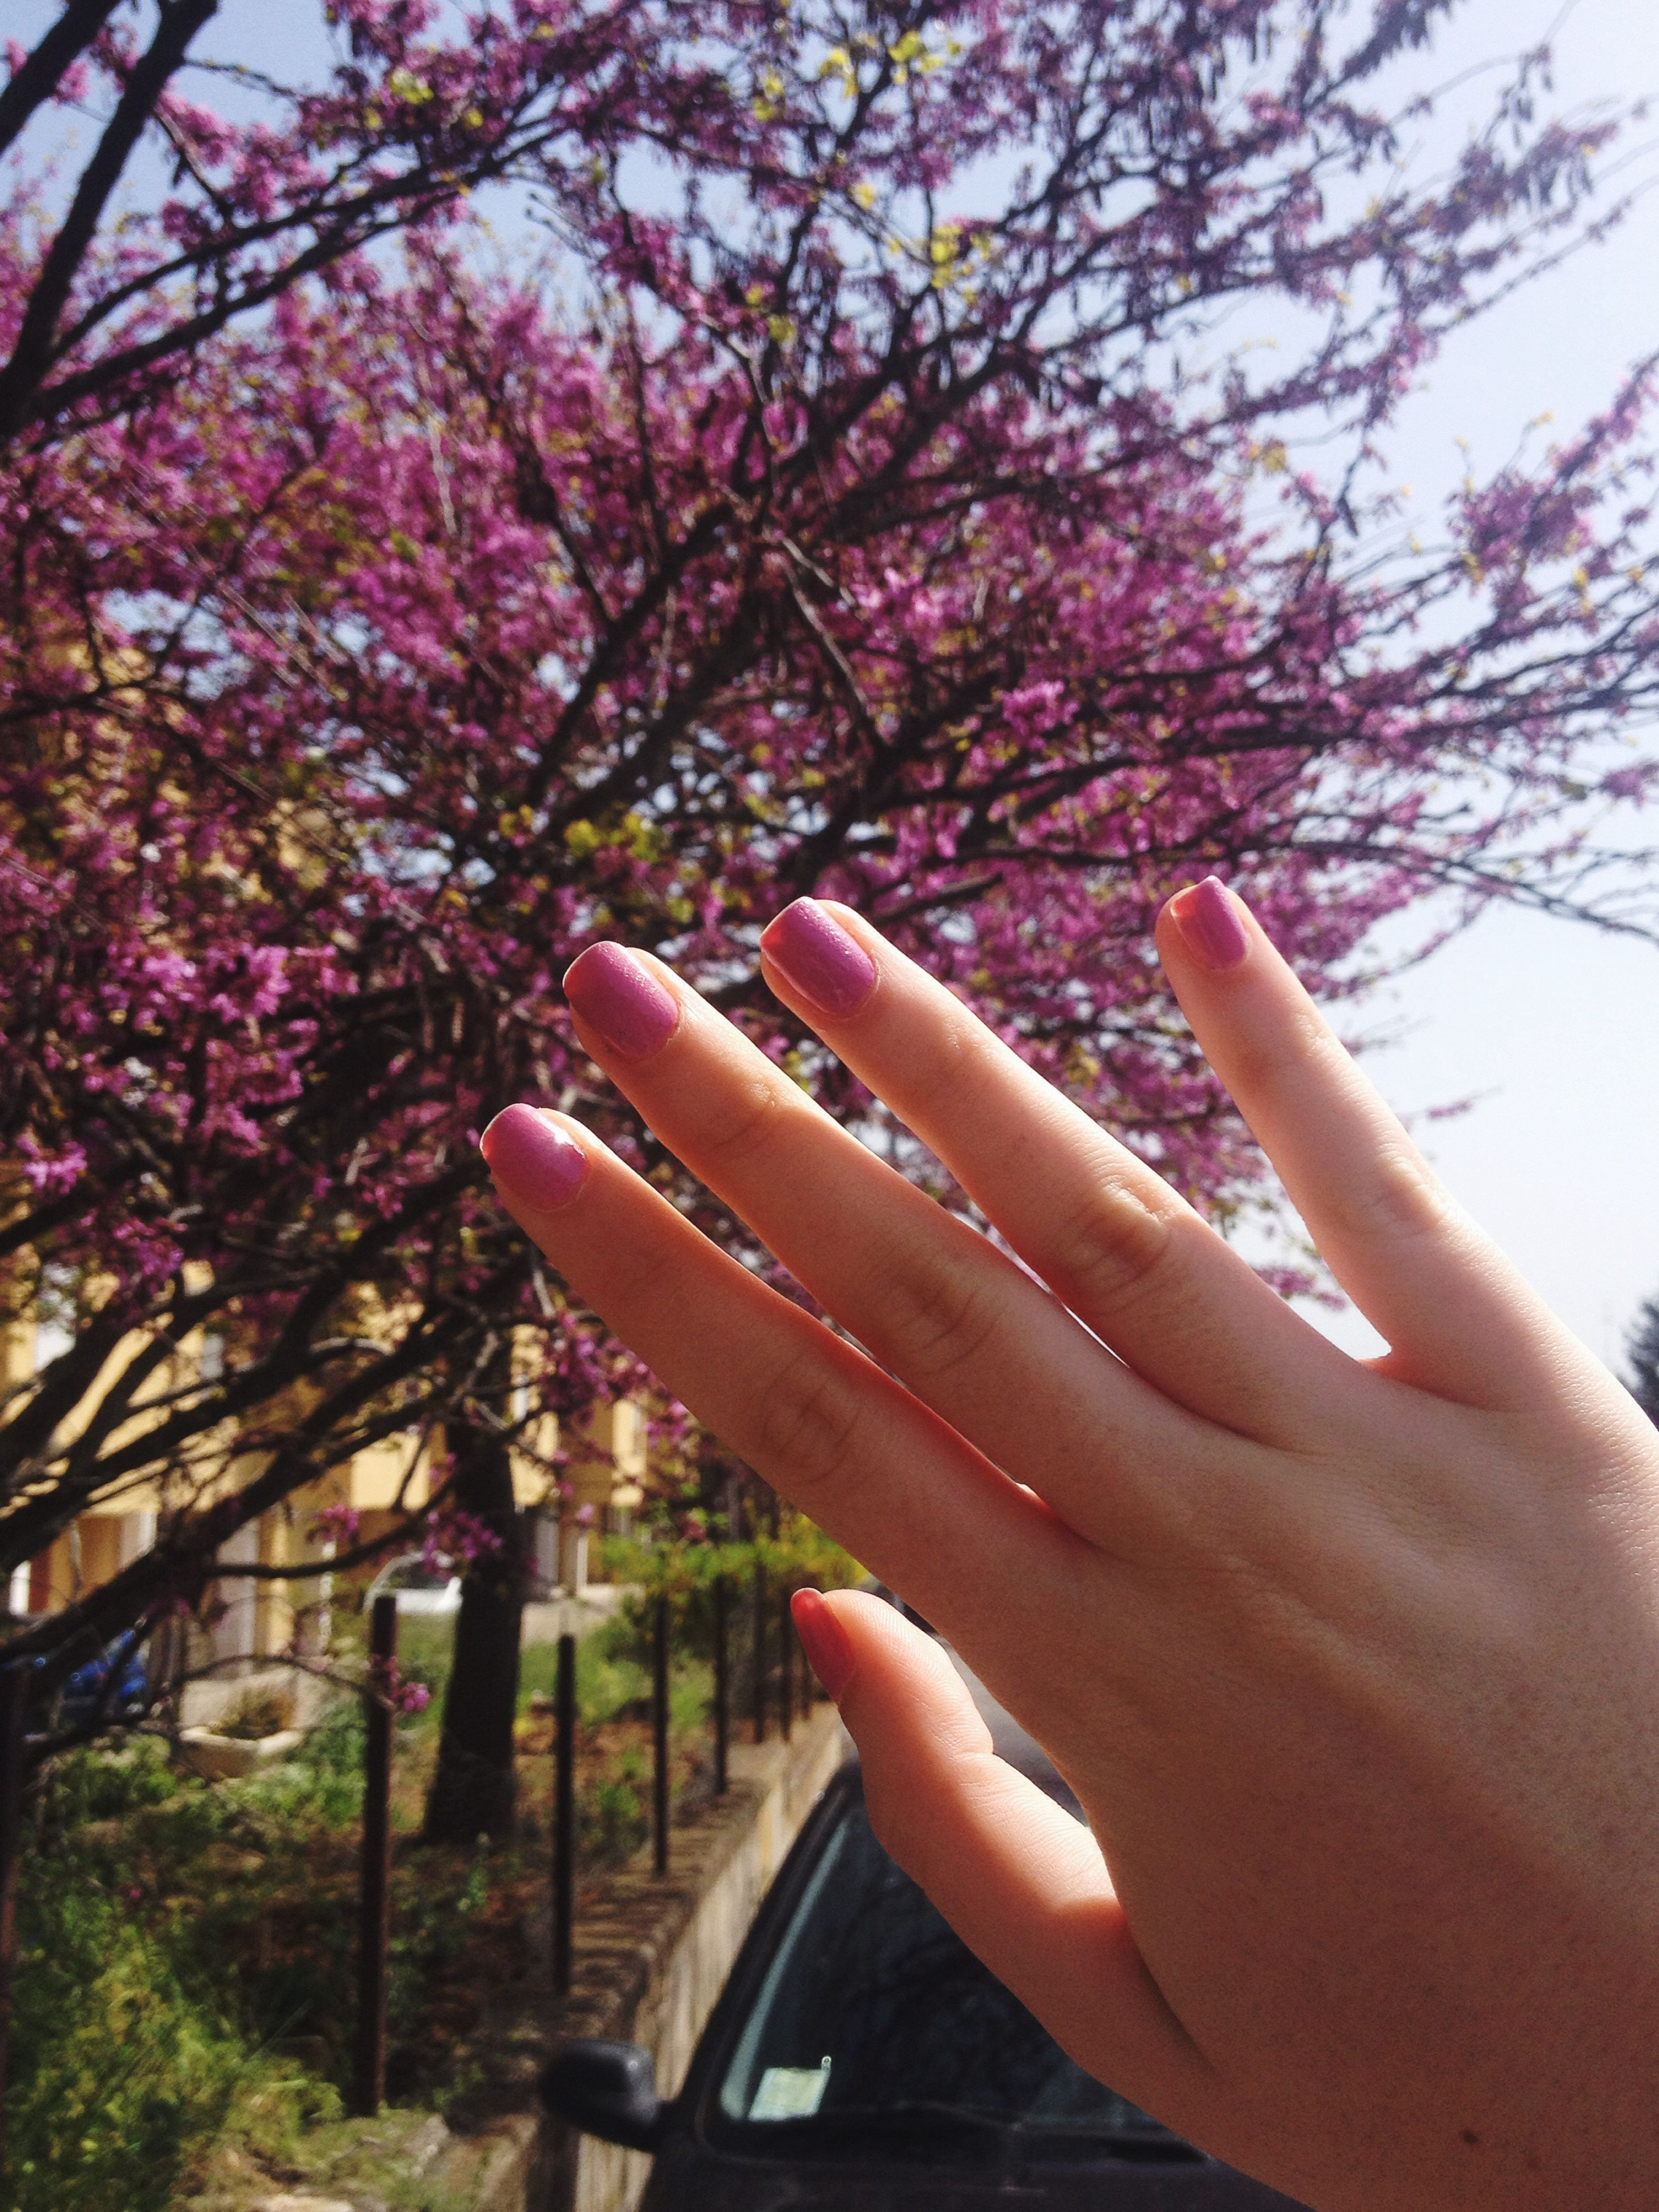 person, holding, part of, tree, cropped, flower, lifestyles, human finger, leisure activity, personal perspective, unrecognizable person, freshness, growth, day, outdoors, close-up